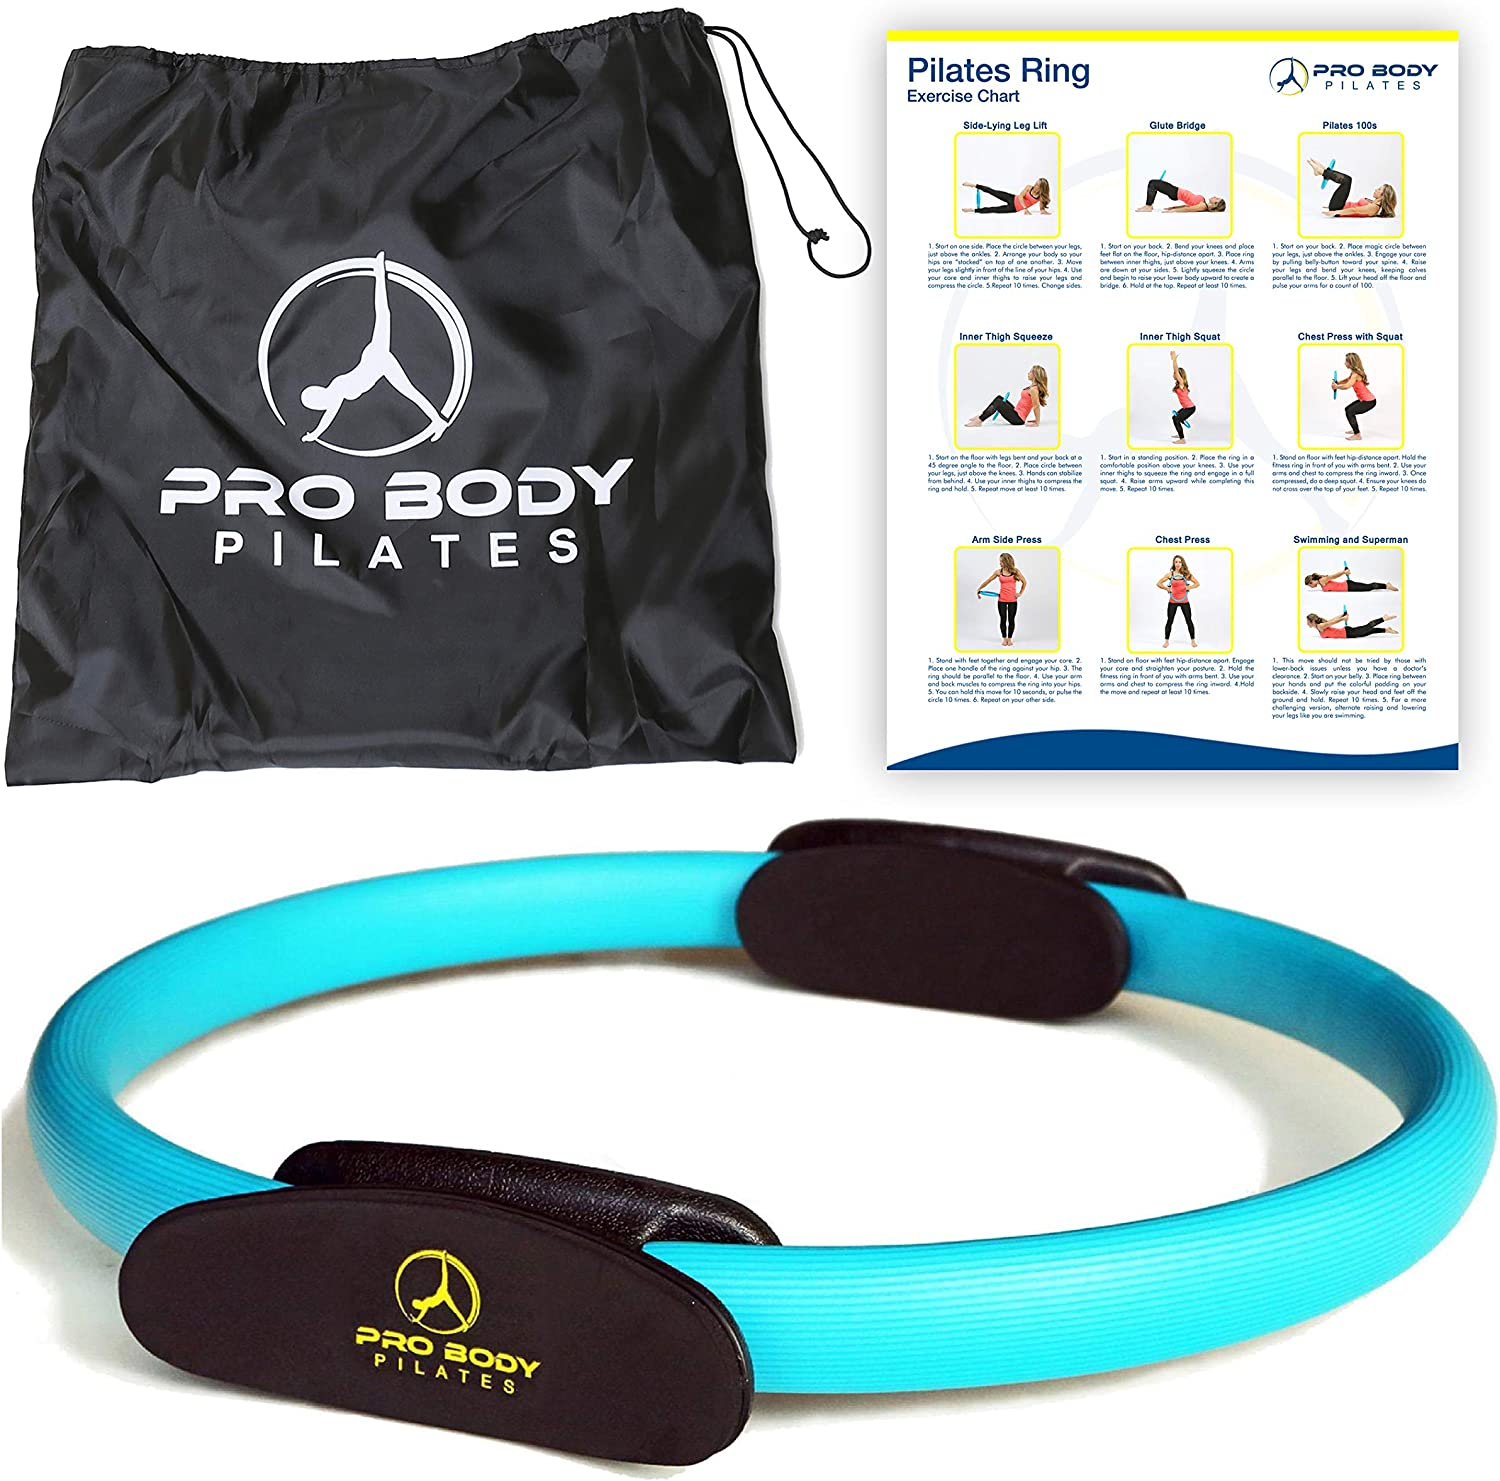 Pilates Ring Superior Unbreakable Fitness Magic Circle For Toning Thighs Abs And Legs Blue Sports Outdoors